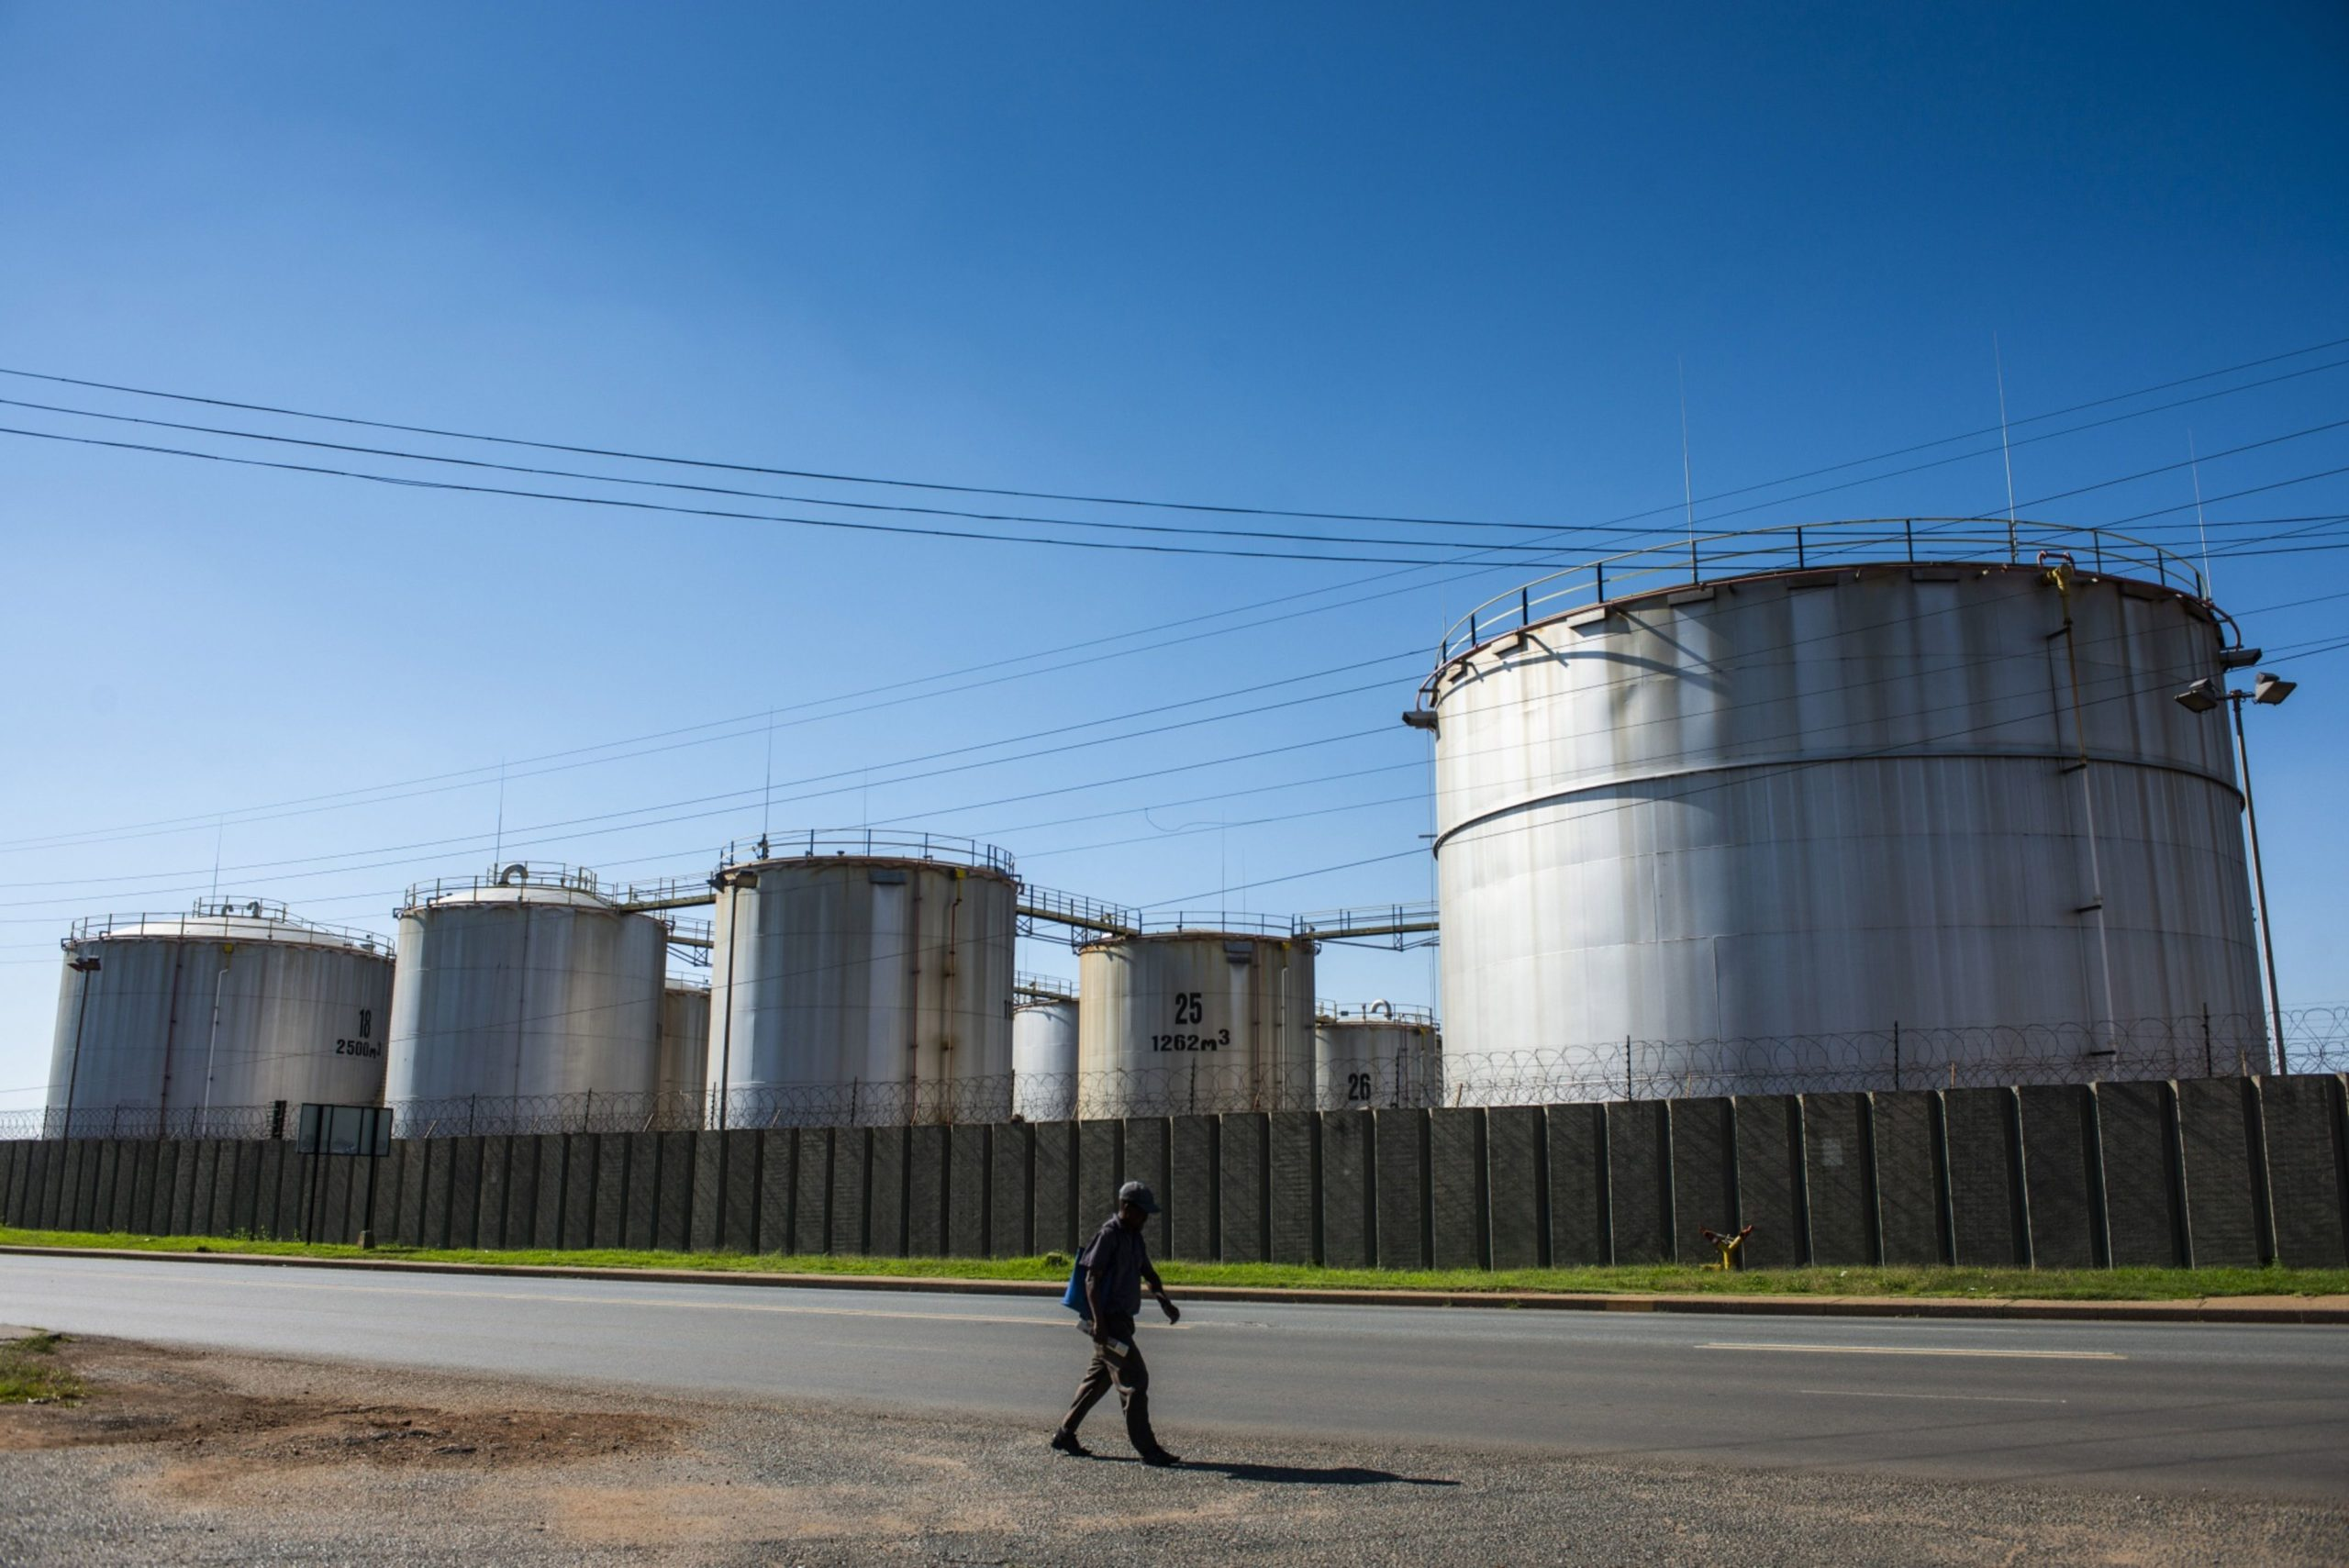 A pedestrian walks alongside oil storage tanks at a facility in the Alrode district